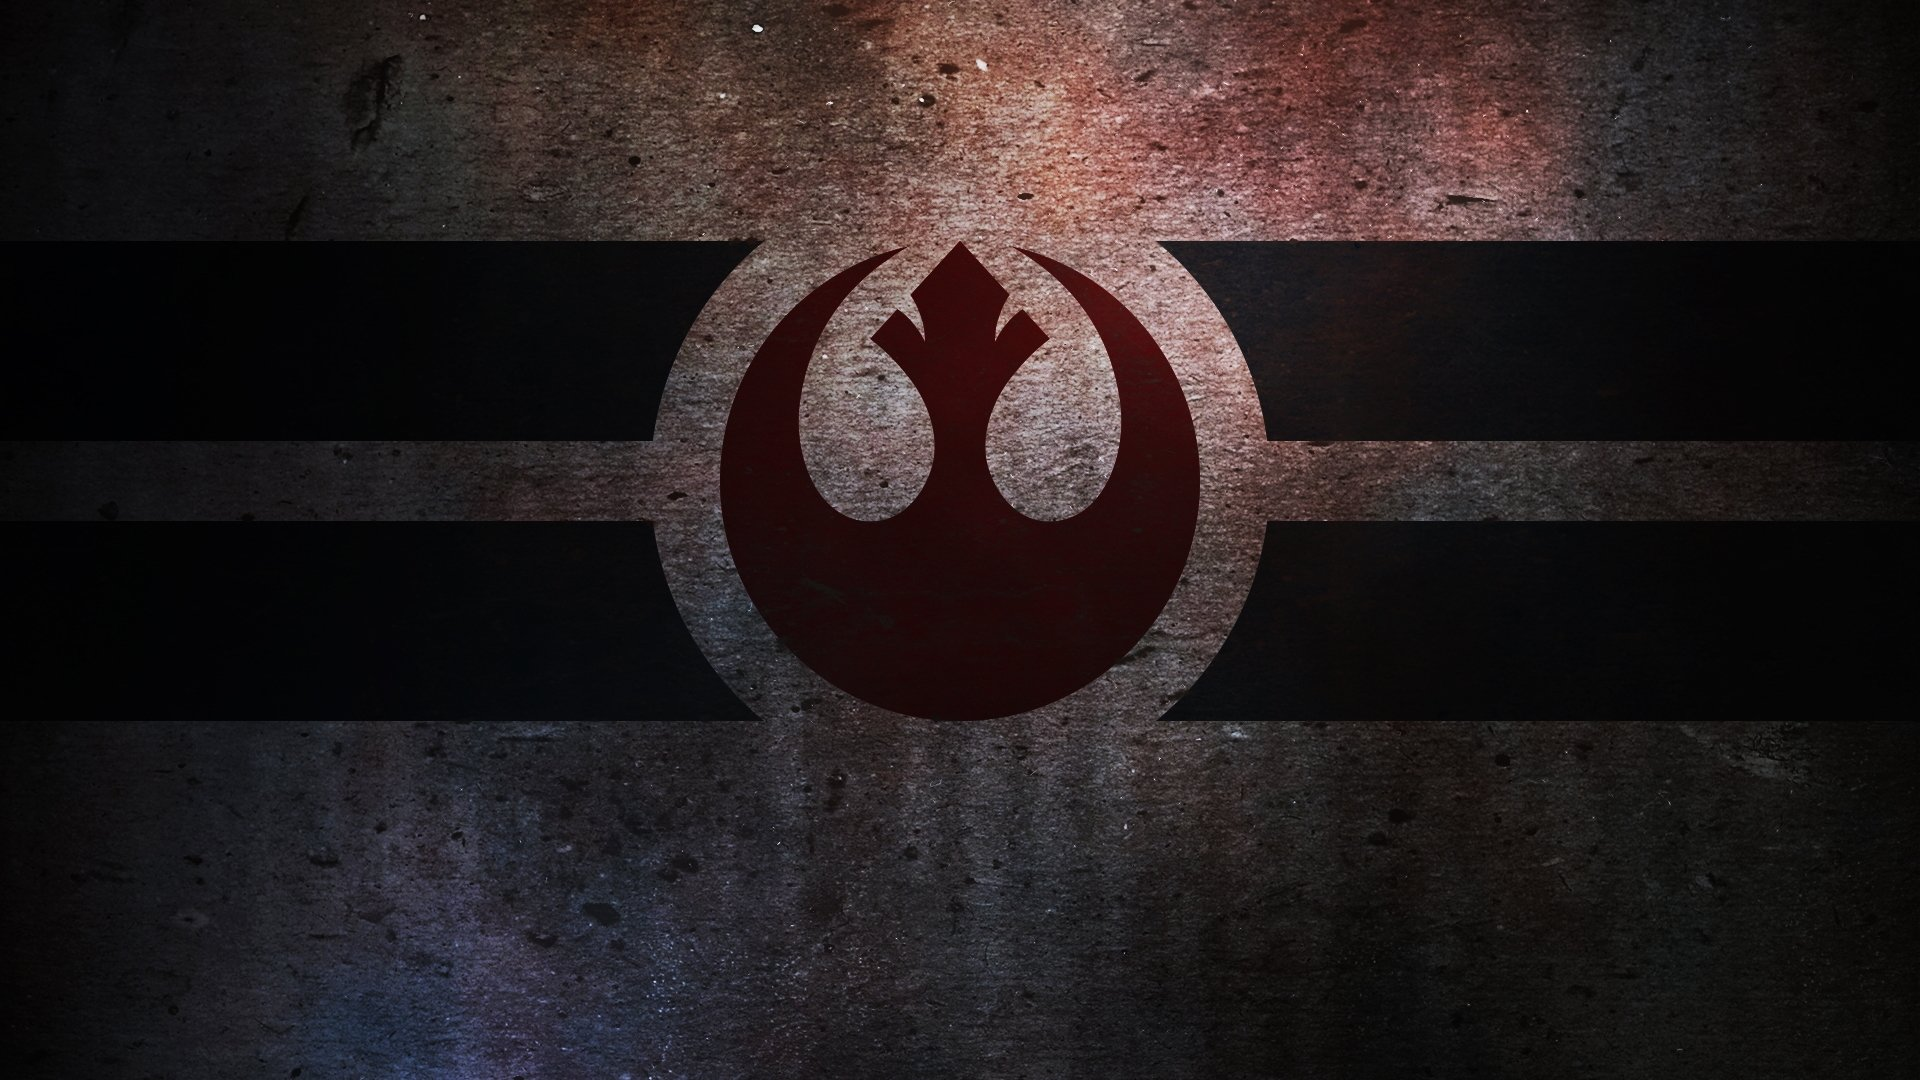 rebel alliance full hd wallpaper and background image | 1920x1080